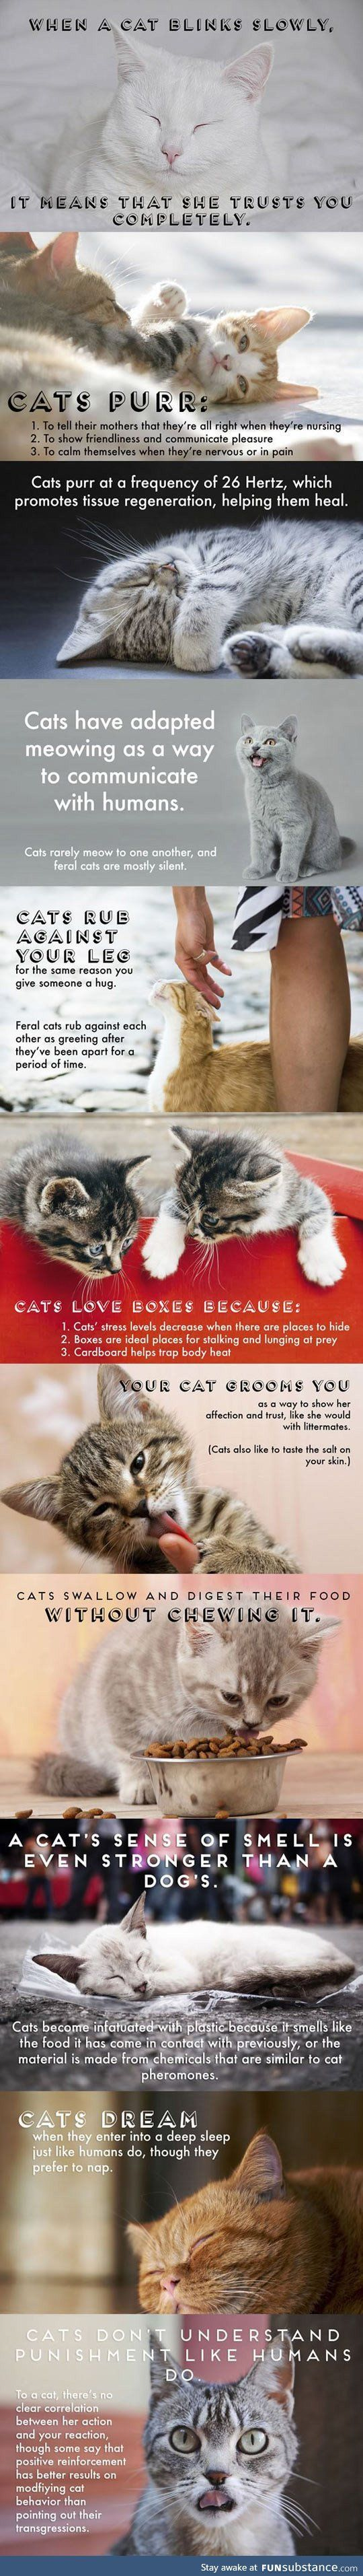 Things You Probably Didn't Know About Cats